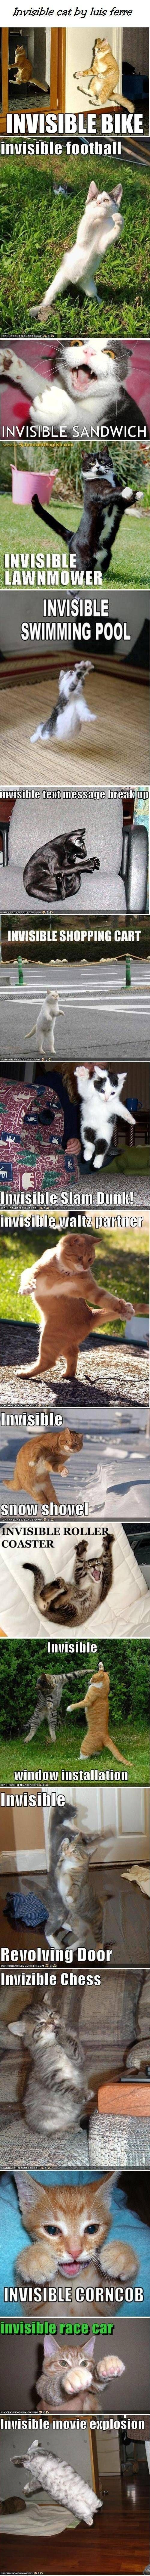 The lawnmower cat is soooo cute! And the breakup one is great. The waltz one looks more like salsa dancing, though.